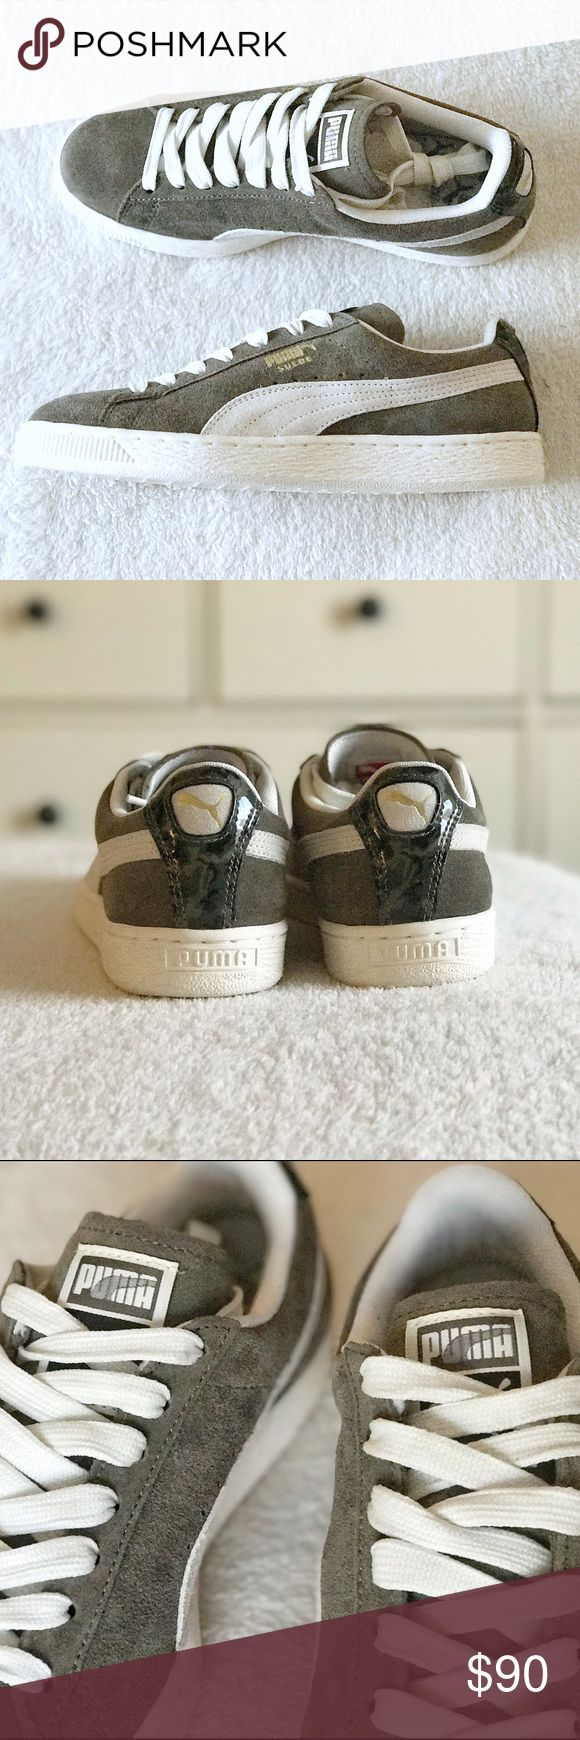 Puma Suede Classic NC sneakers WMNS size 7.5 SOLD OUT BRAND NEW Puma Suede Classic NC Burnt Olive in Women's size 7.5 Puma Shoes Sneakers